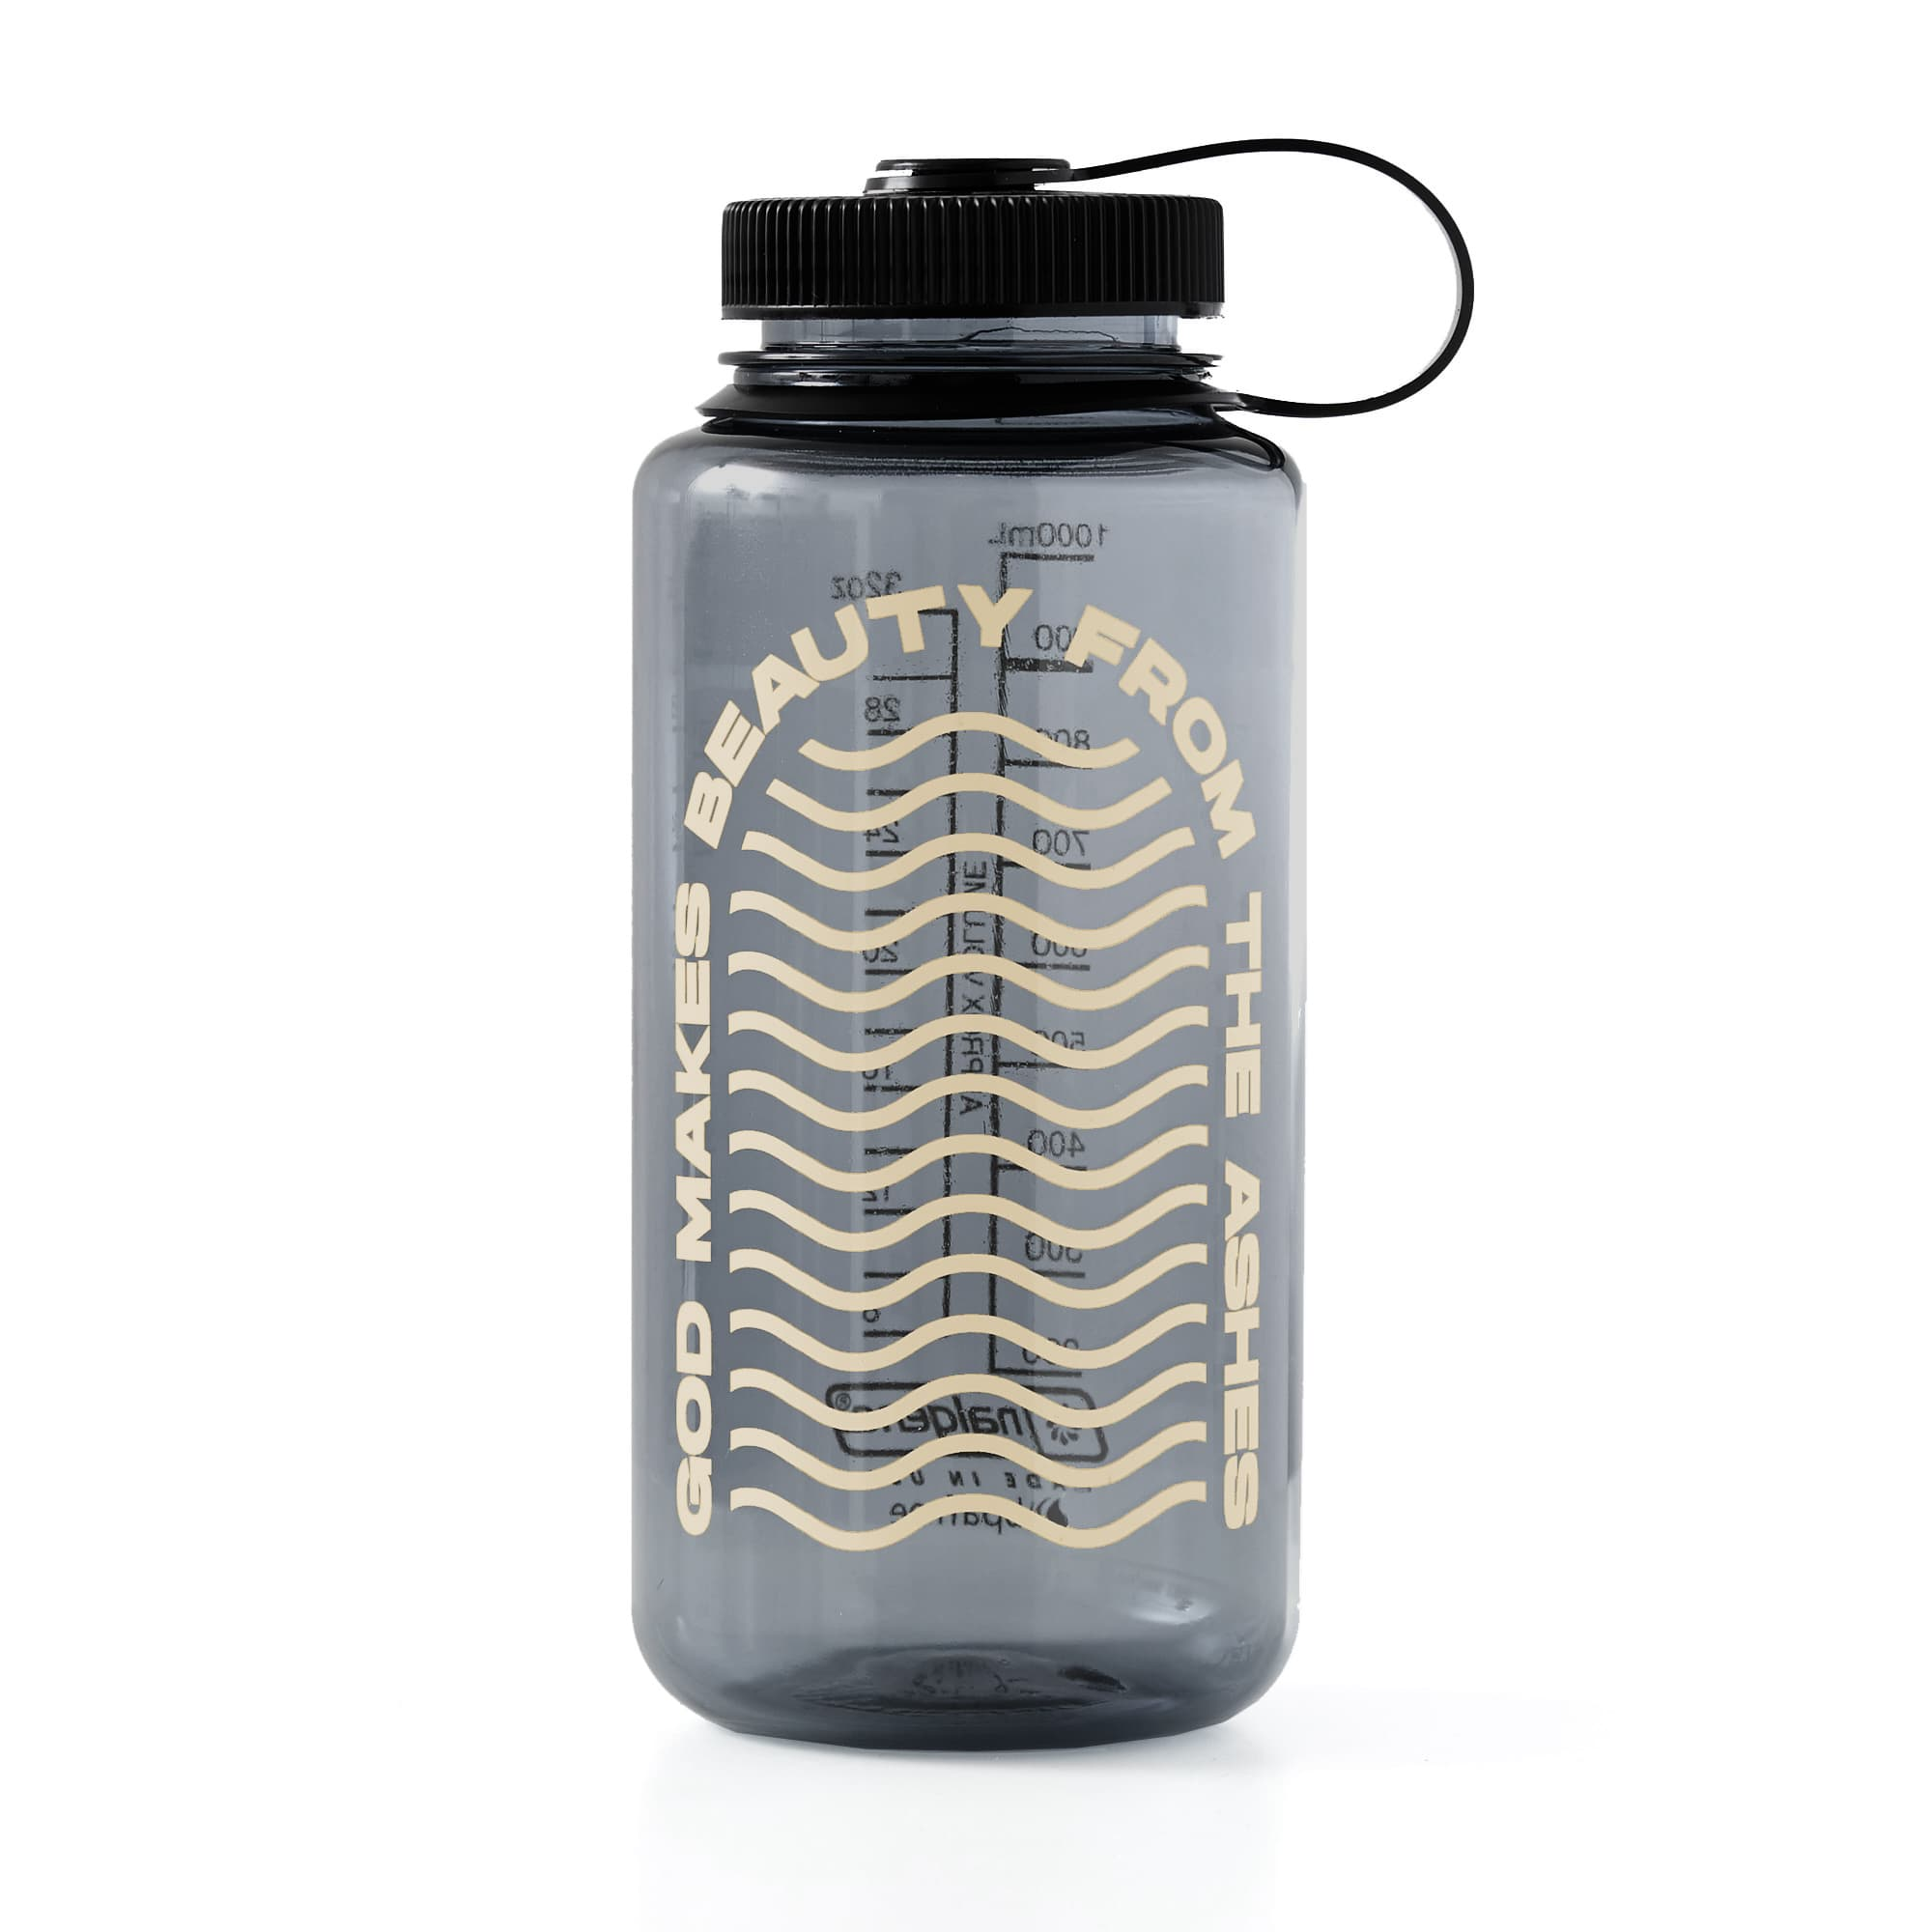 Lecrae 'From the Ashes' Nalgene Bottle - 32 oz